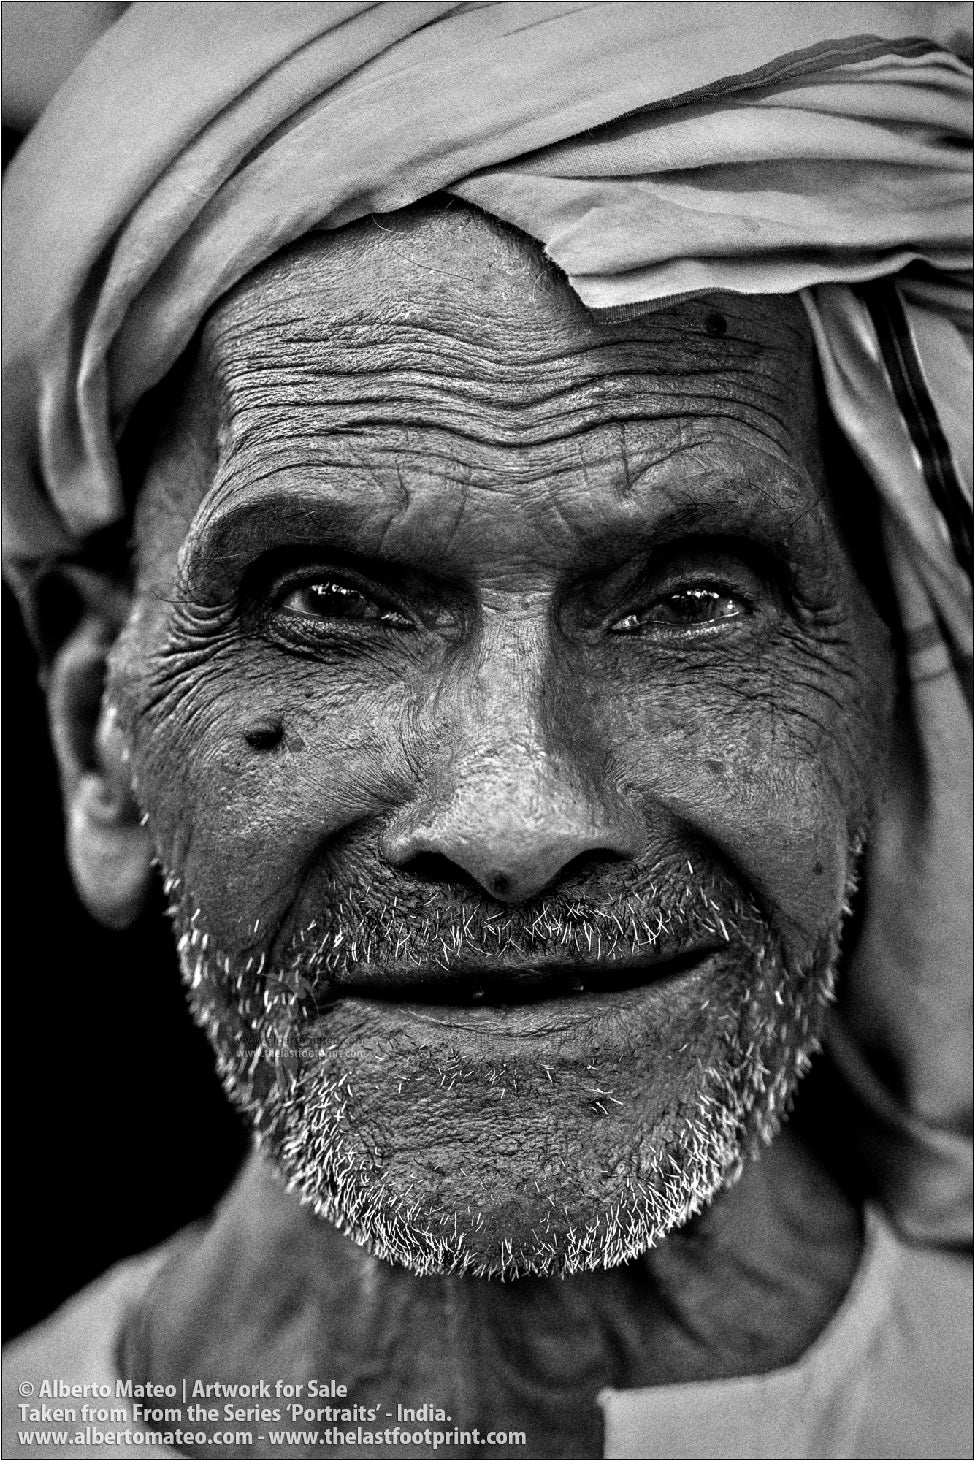 Portrait of Elderly Muslim Man, Ballia, Uttar Pradesh, India.